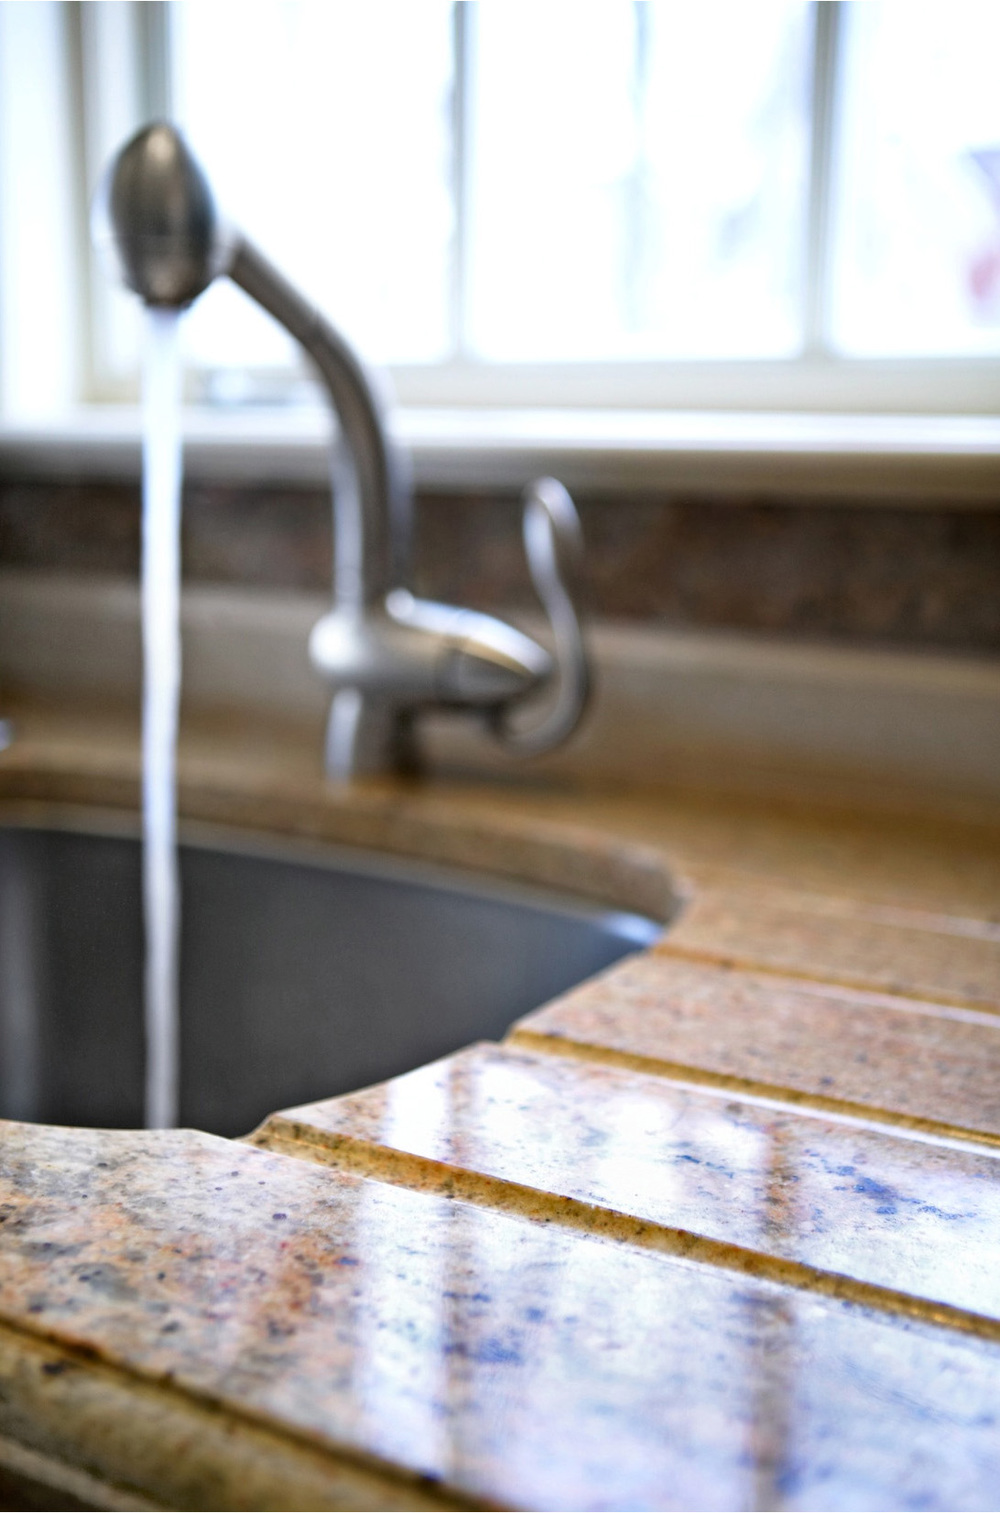 76-counter sink detail.jpg